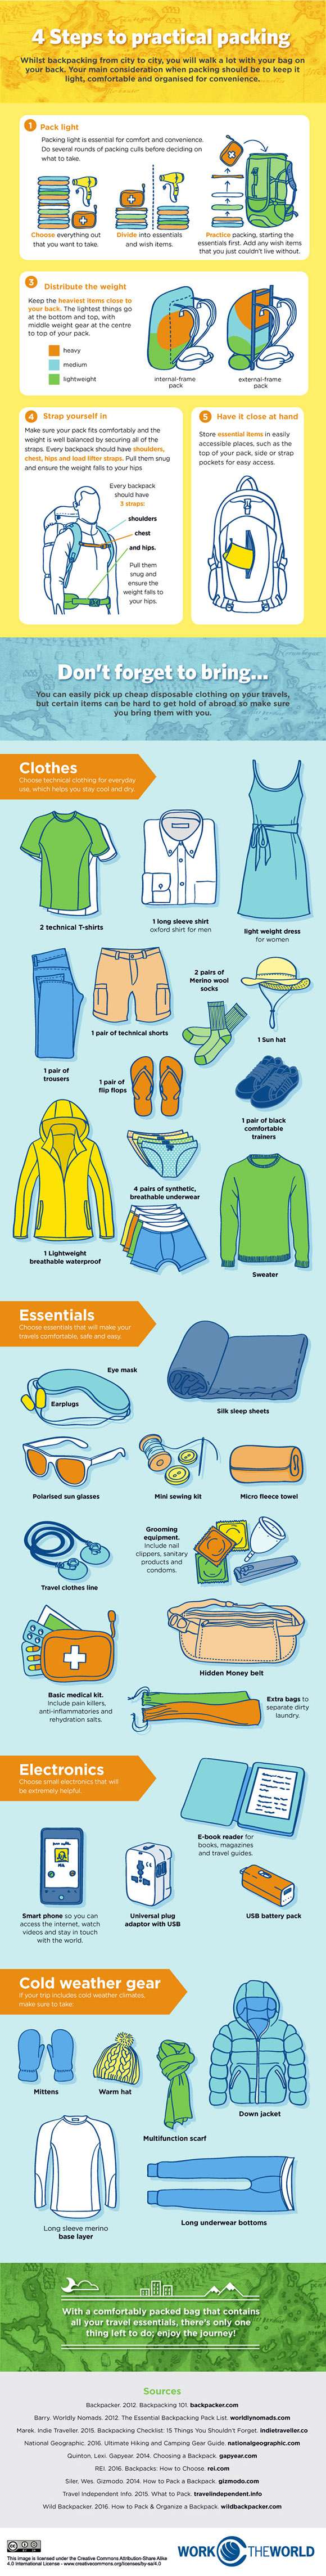 A Backpackers Guide to Packing a backpack